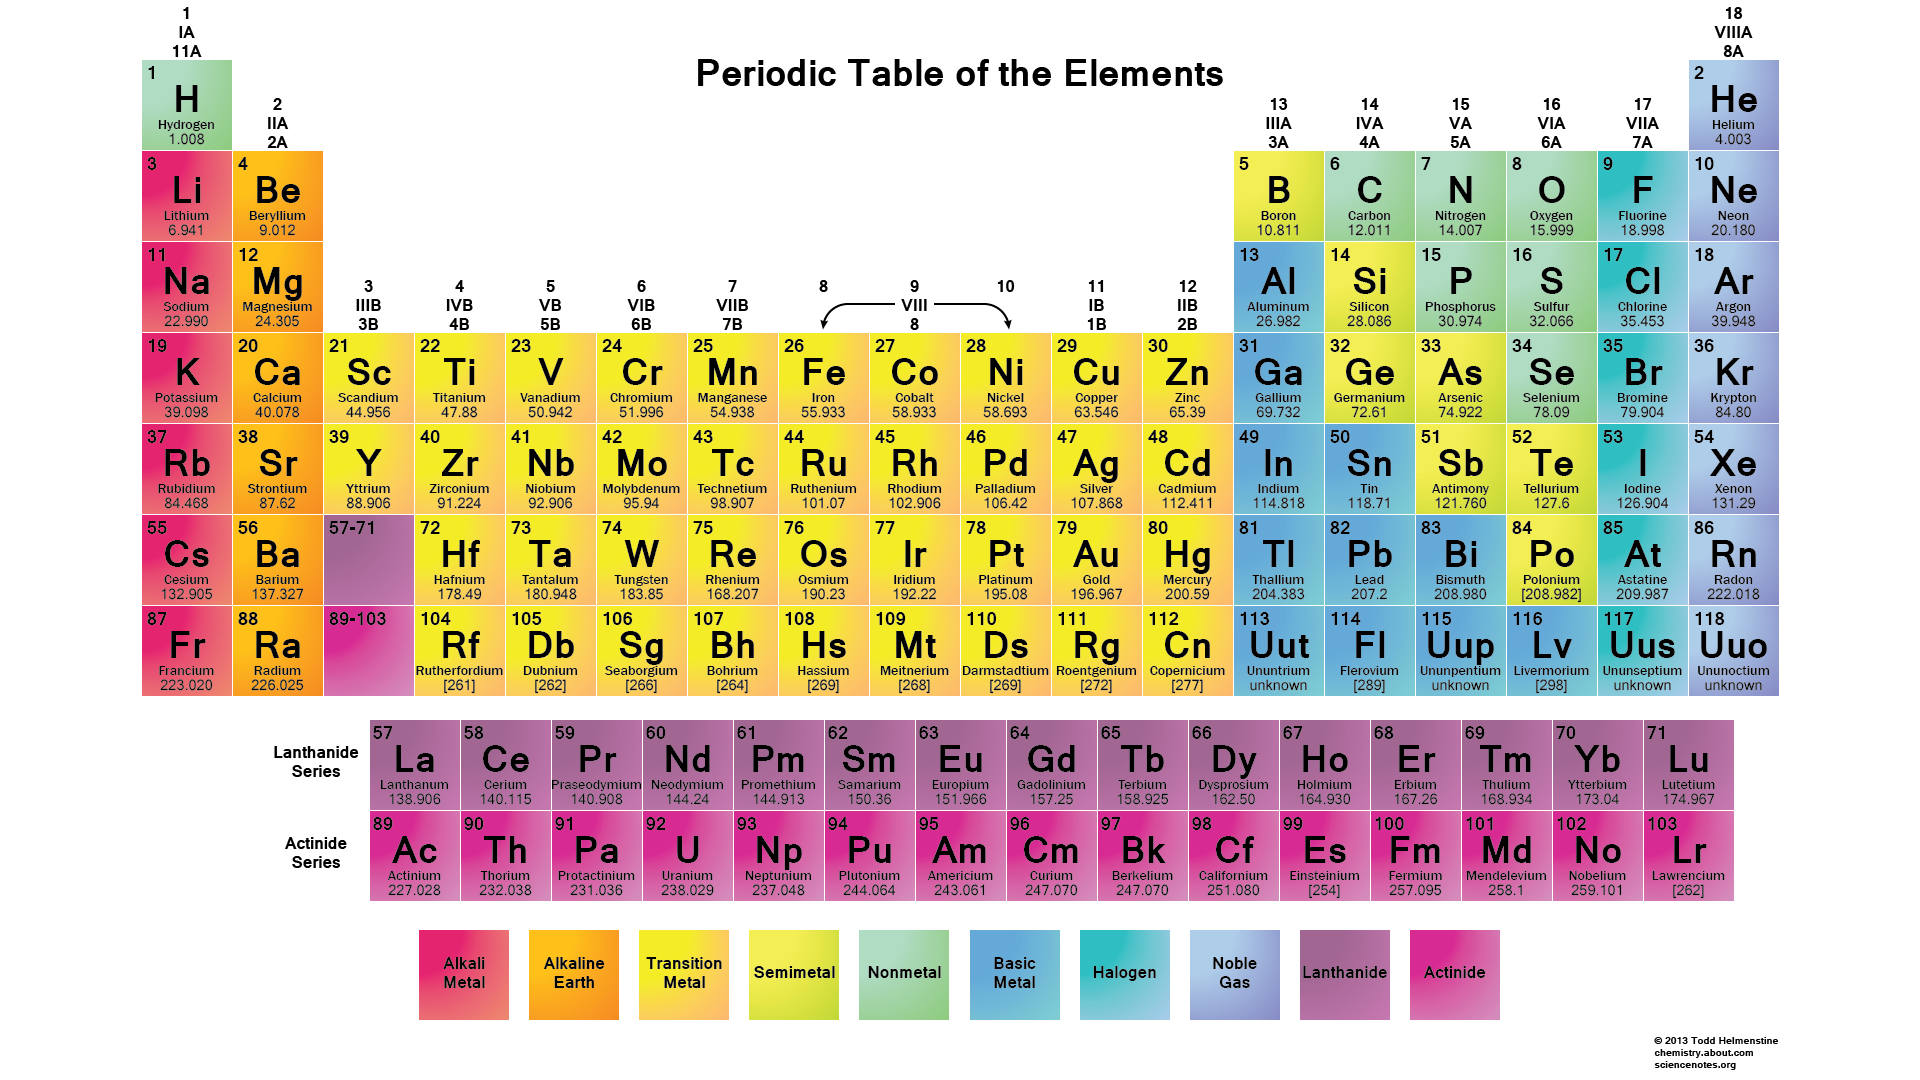 Element 76 periodic table images periodic table images element 76 periodic table image collections periodic table images element 76 periodic table images periodic table gamestrikefo Image collections